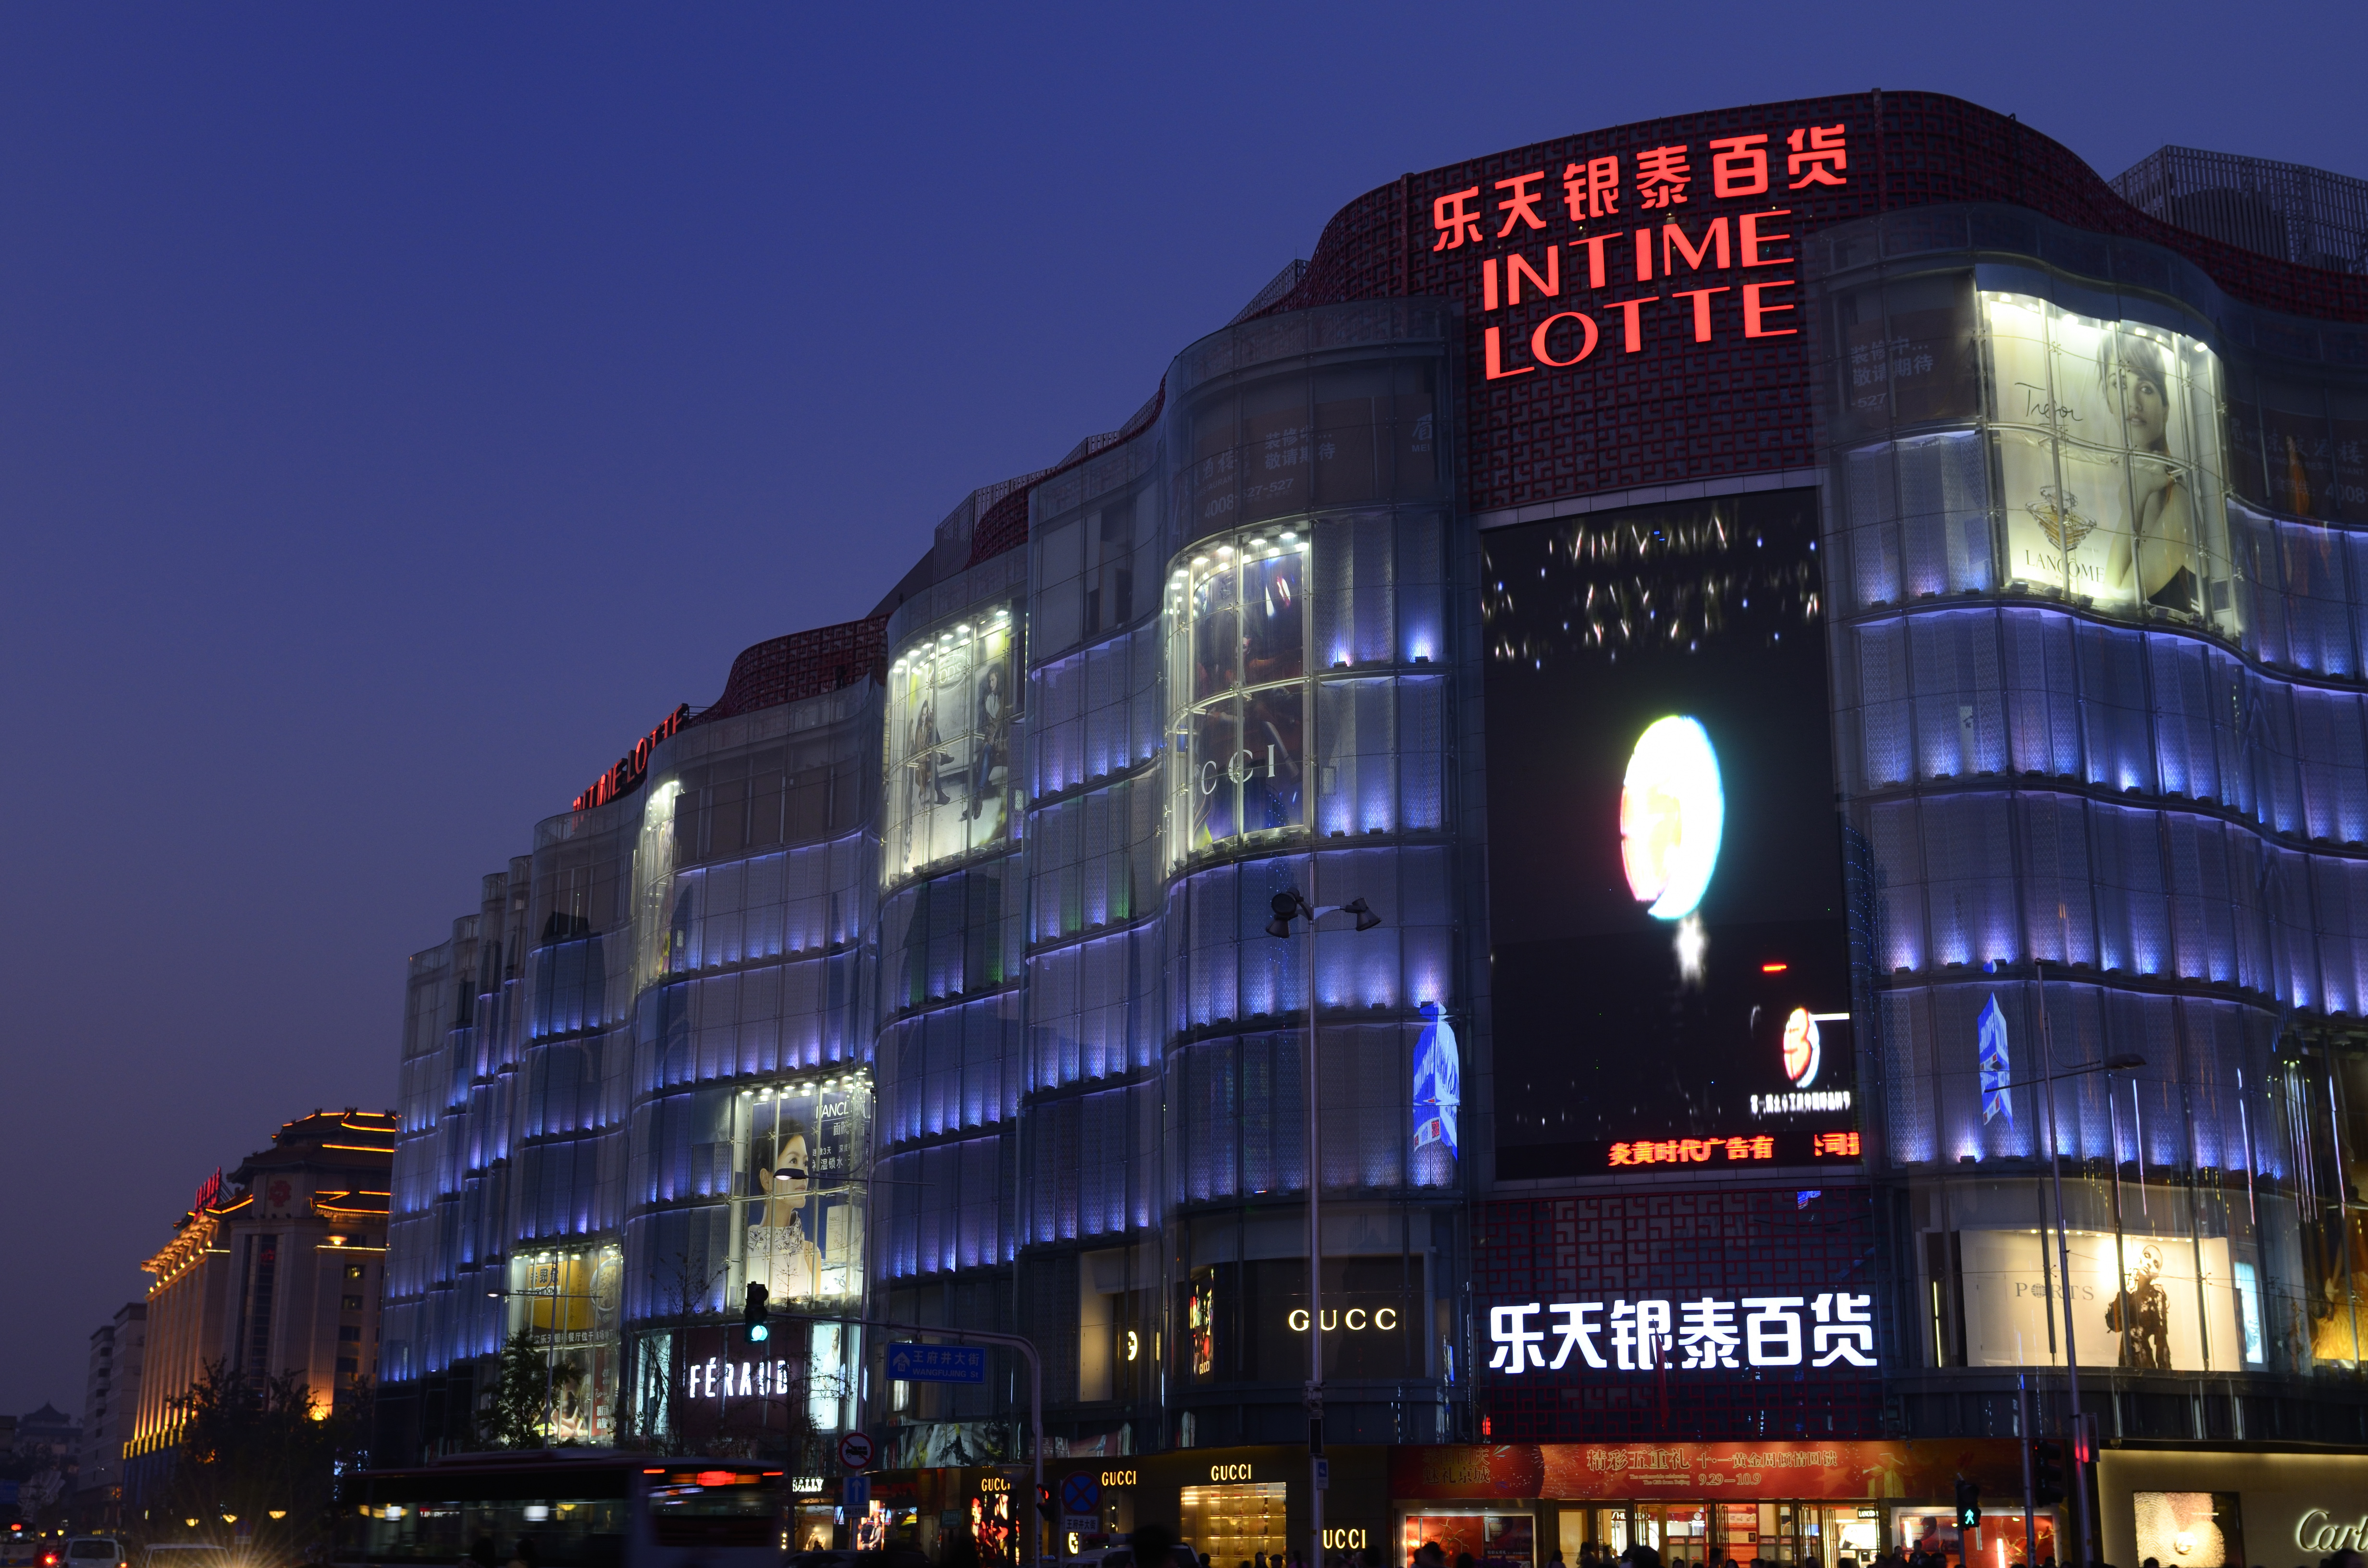 Intime Lotte department store in Beijing at night